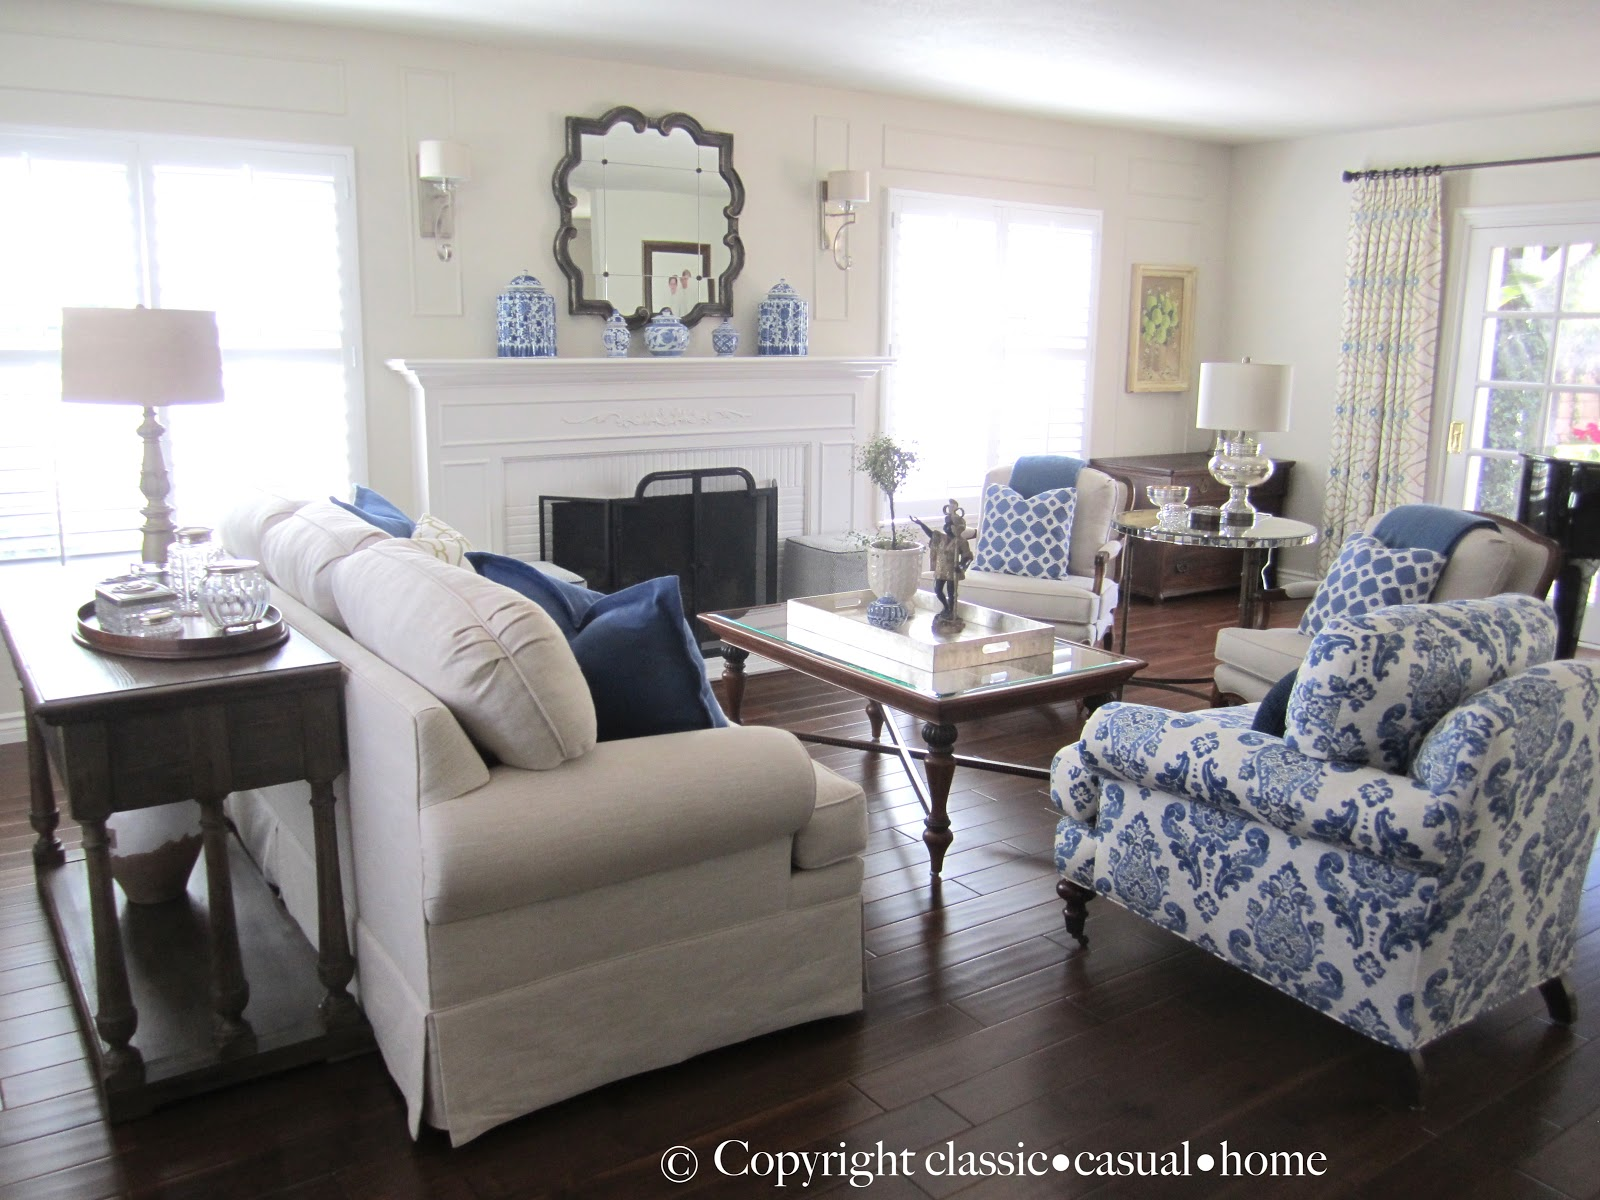 blue white and silver timeless design classic casual home. Black Bedroom Furniture Sets. Home Design Ideas